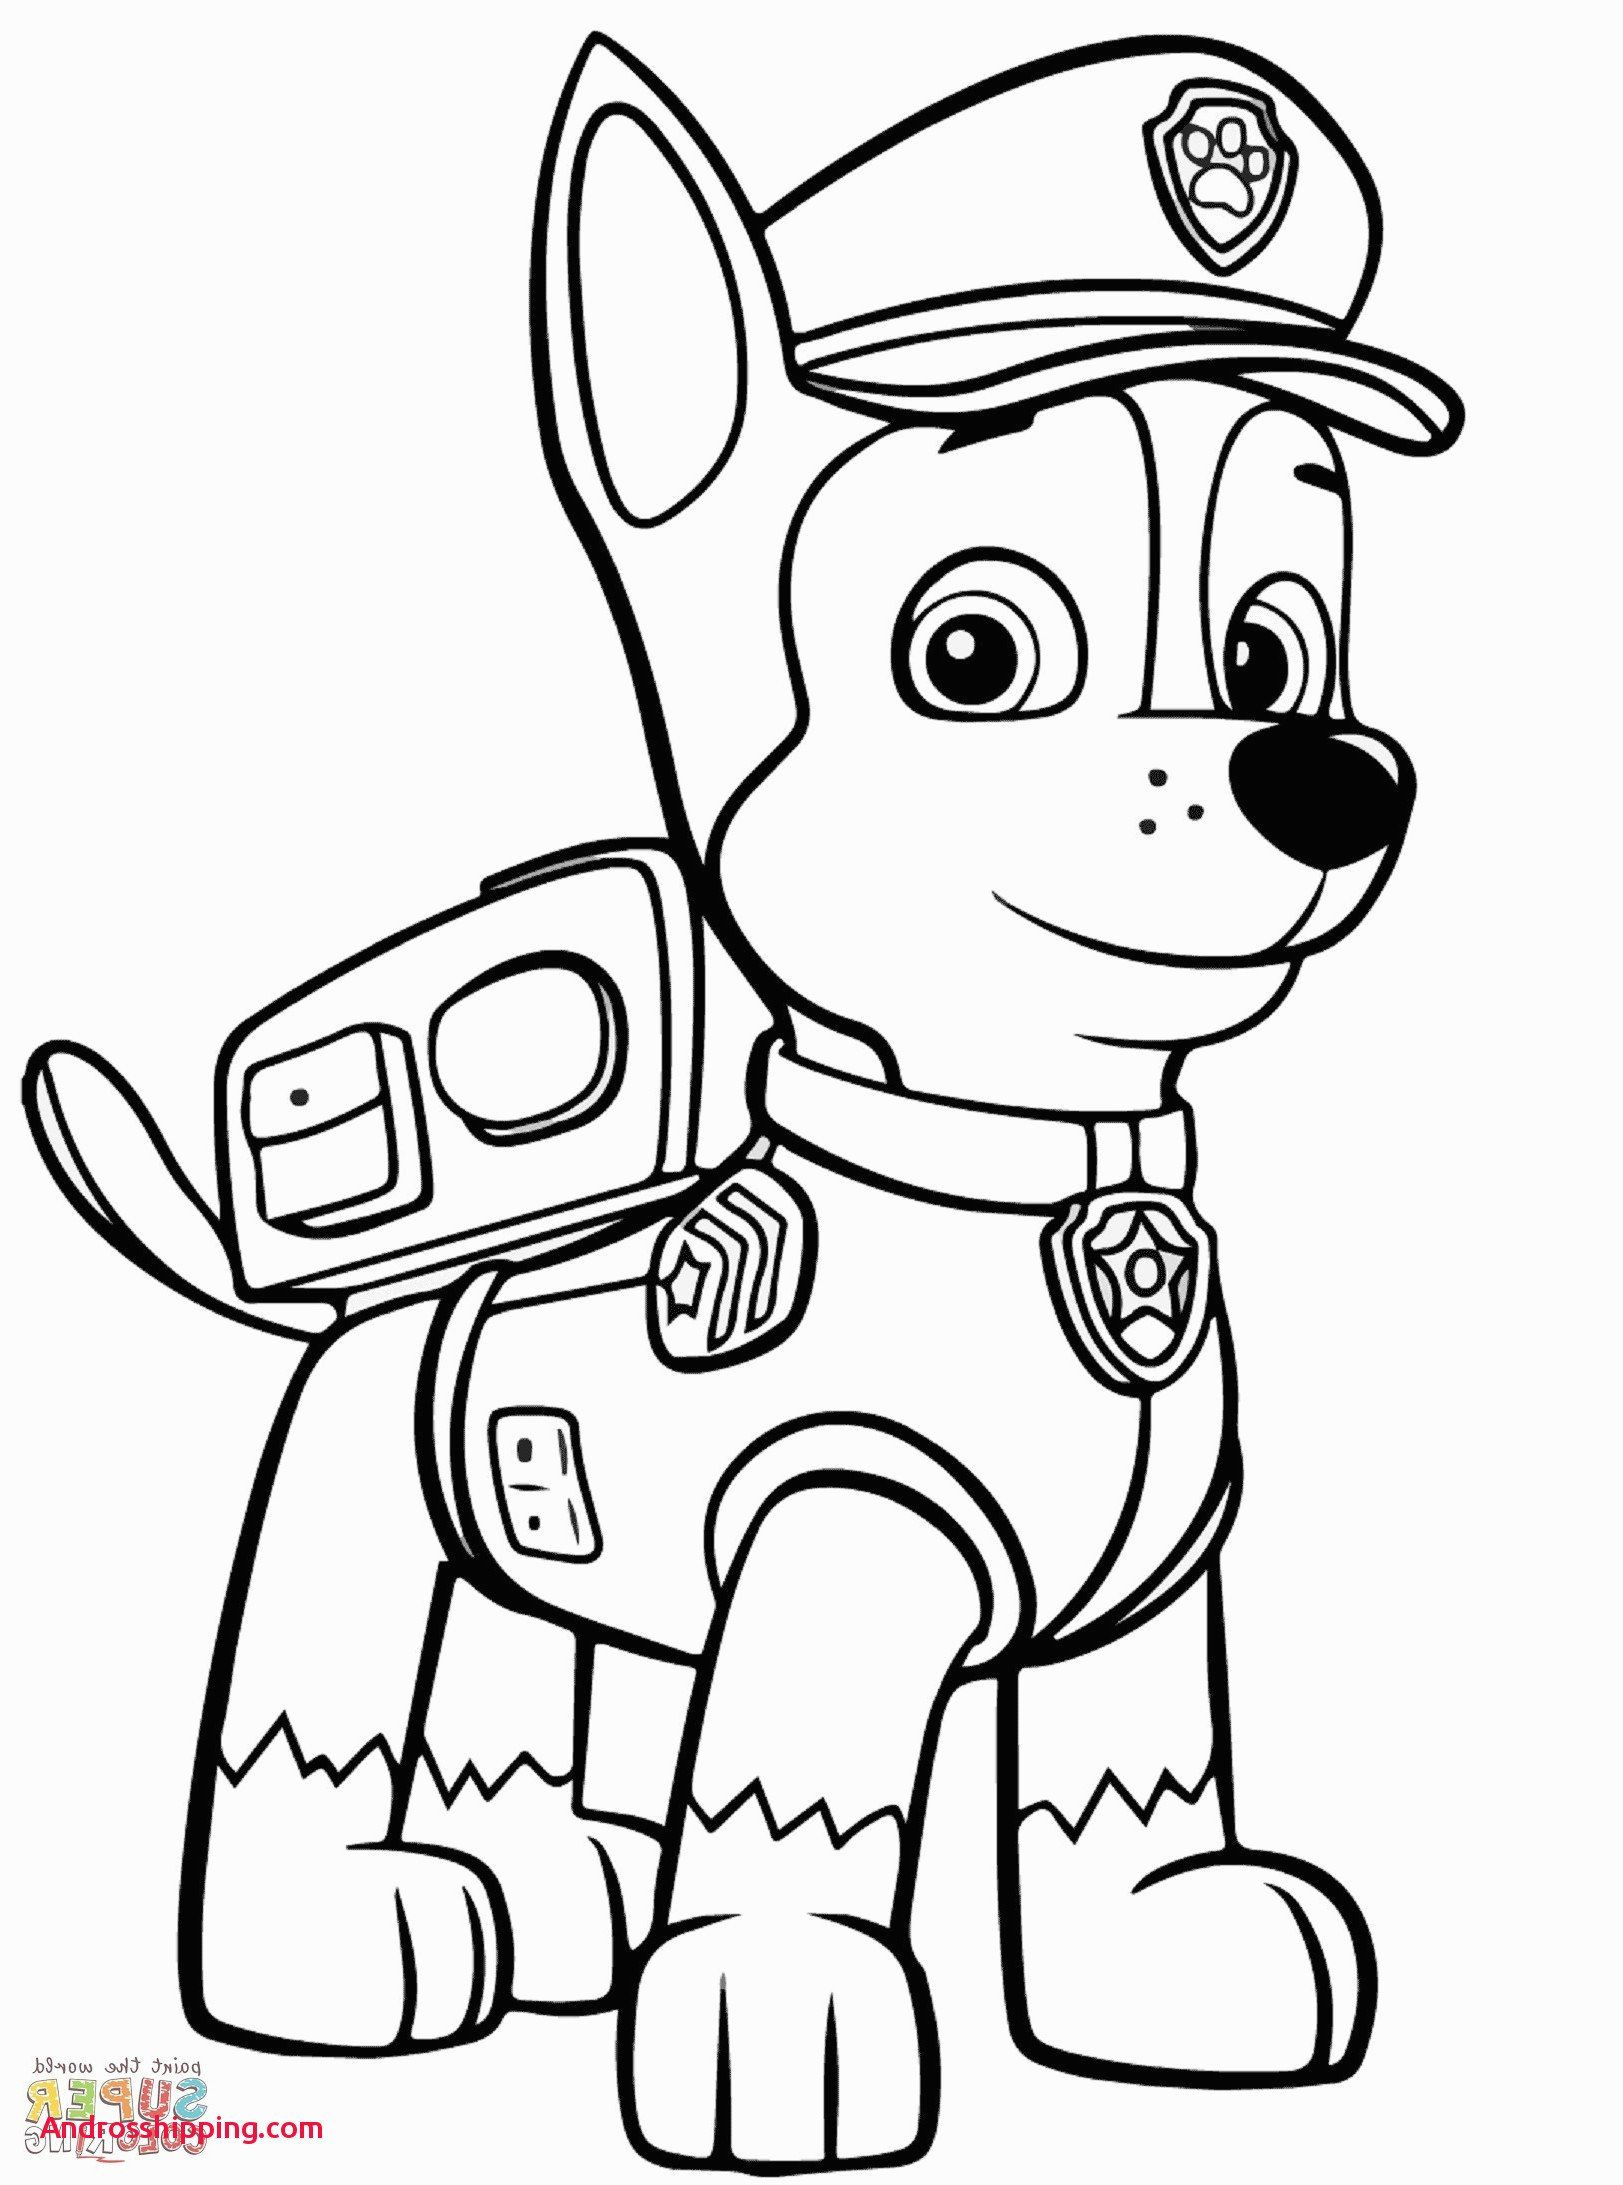 Kids Free Coloring Pages Free Coloring Pages For Kids Google Unicorn Sheets Children Paw Patrol Coloring Paw Patrol Coloring Pages Animal Coloring Pages